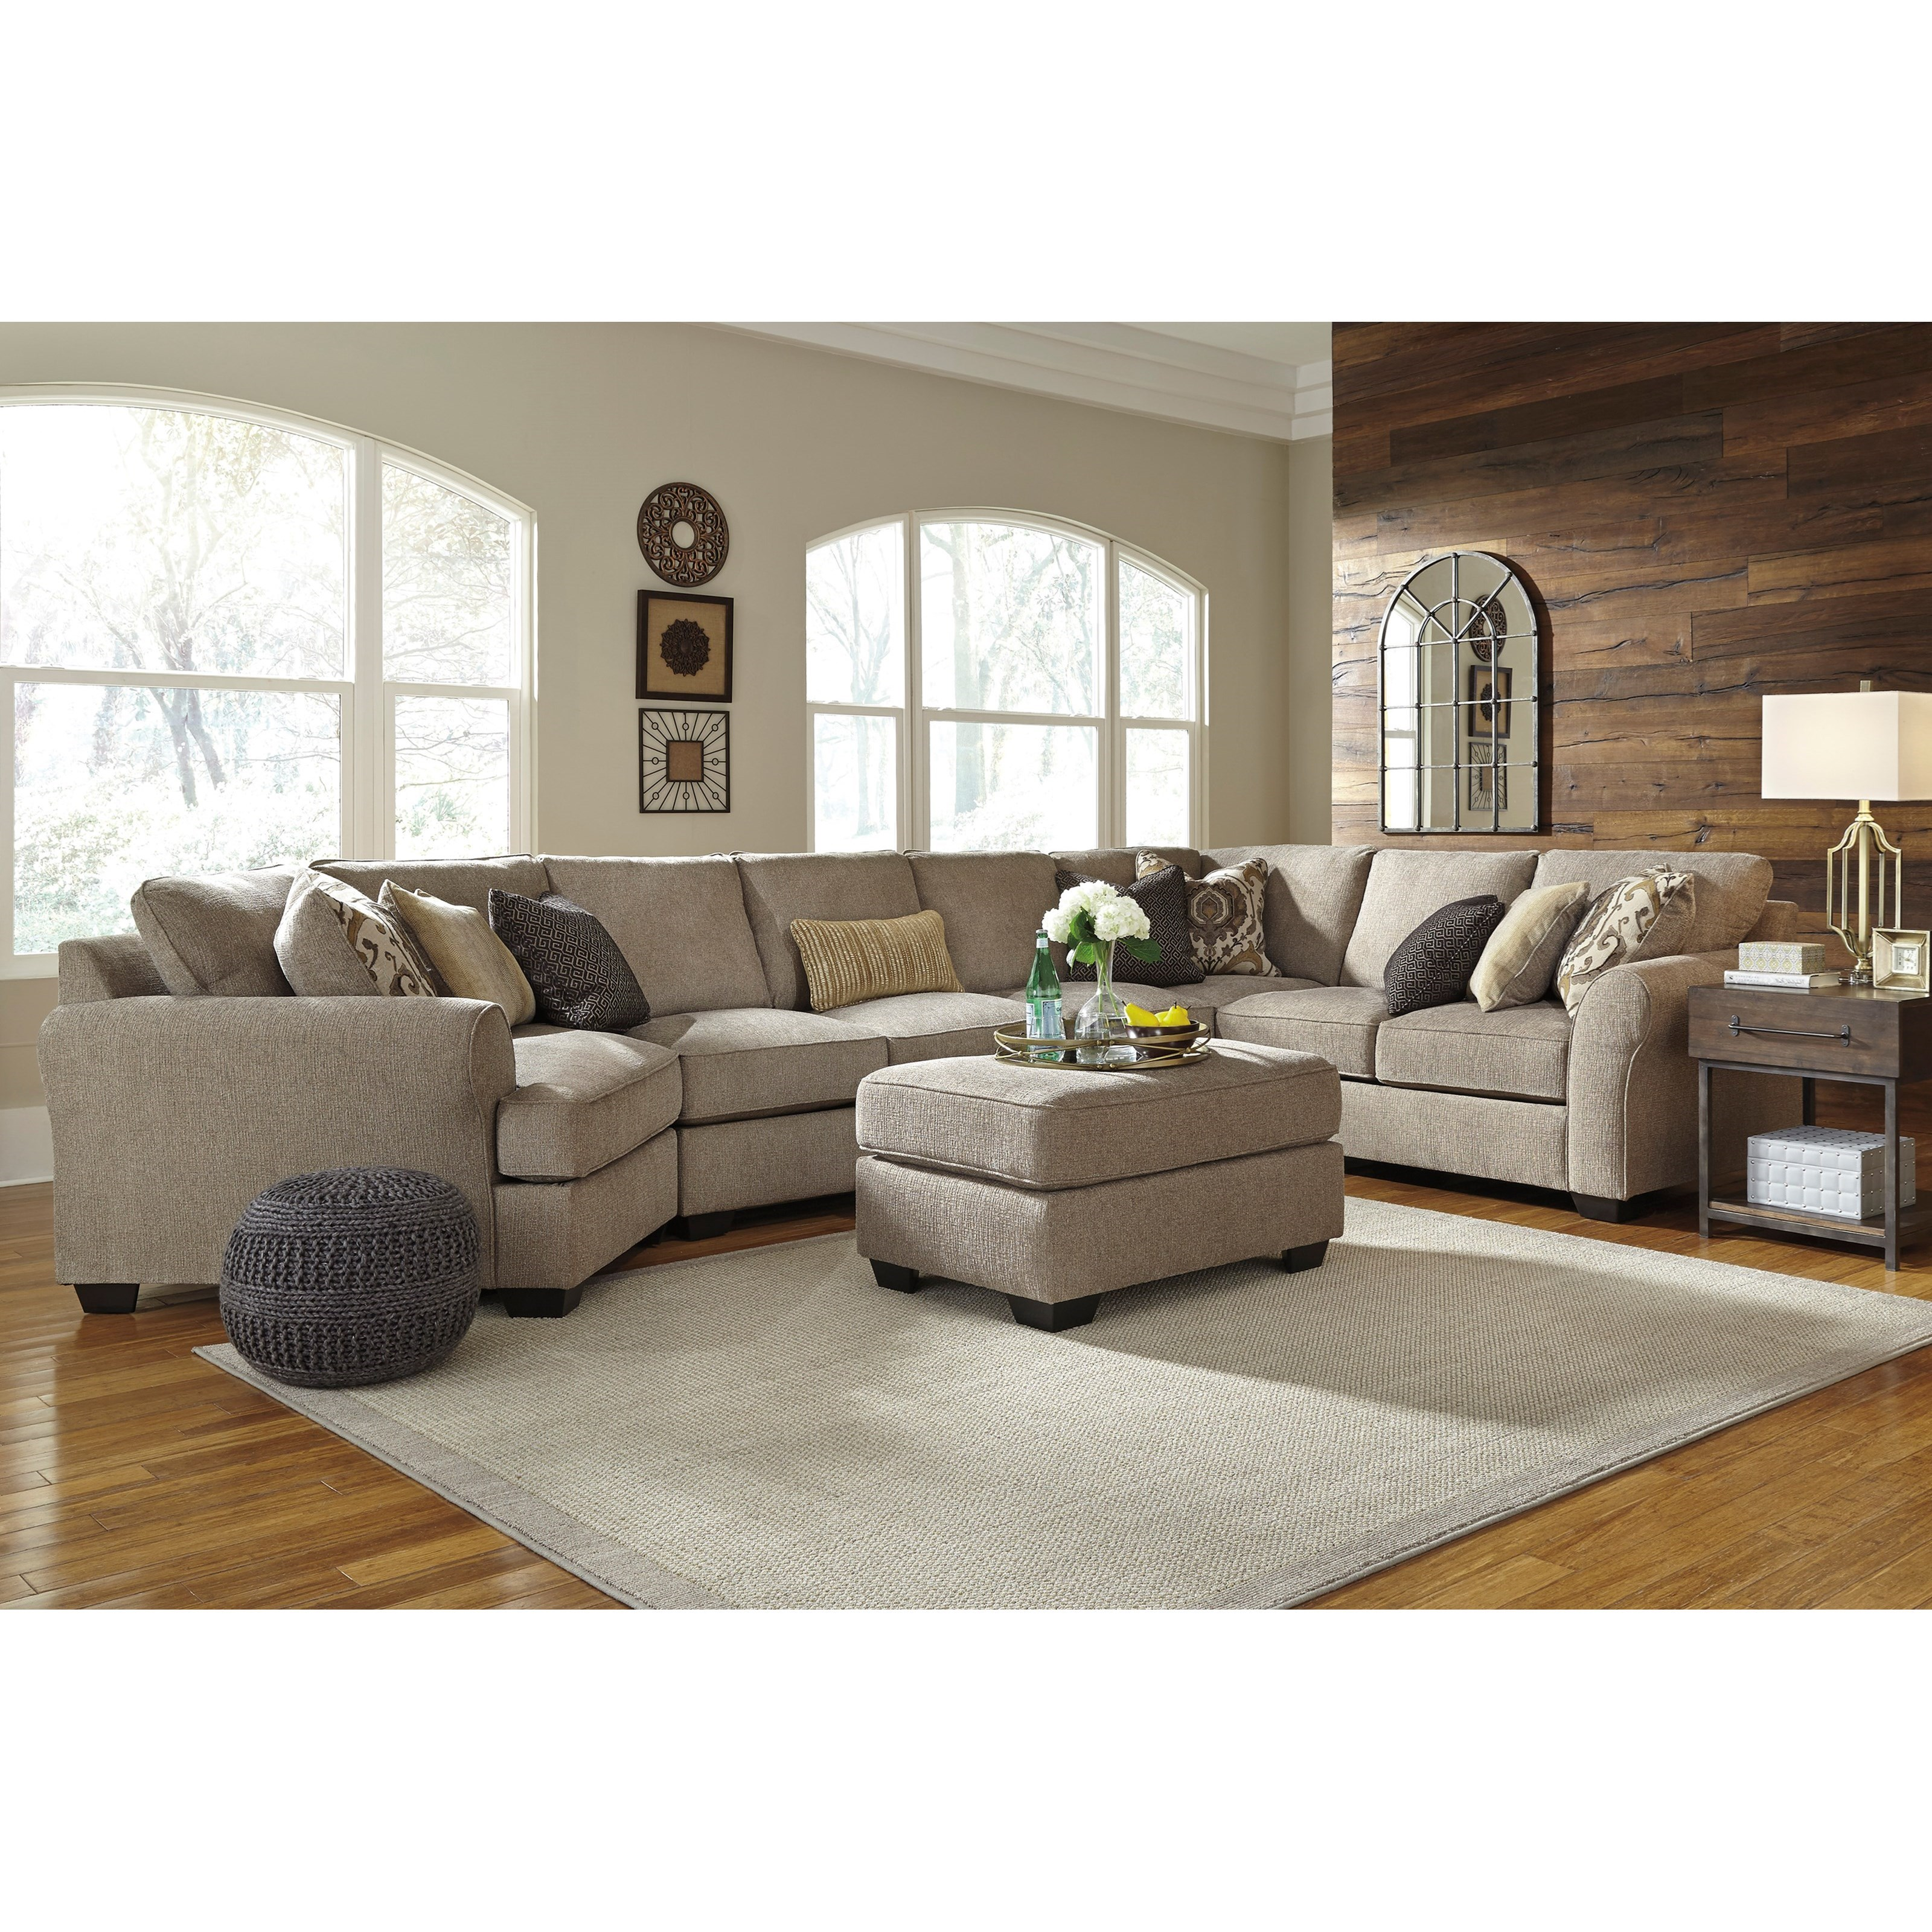 Pantomine 4-Piece Sectional with Ottoman by Benchcraft at Walker's Furniture